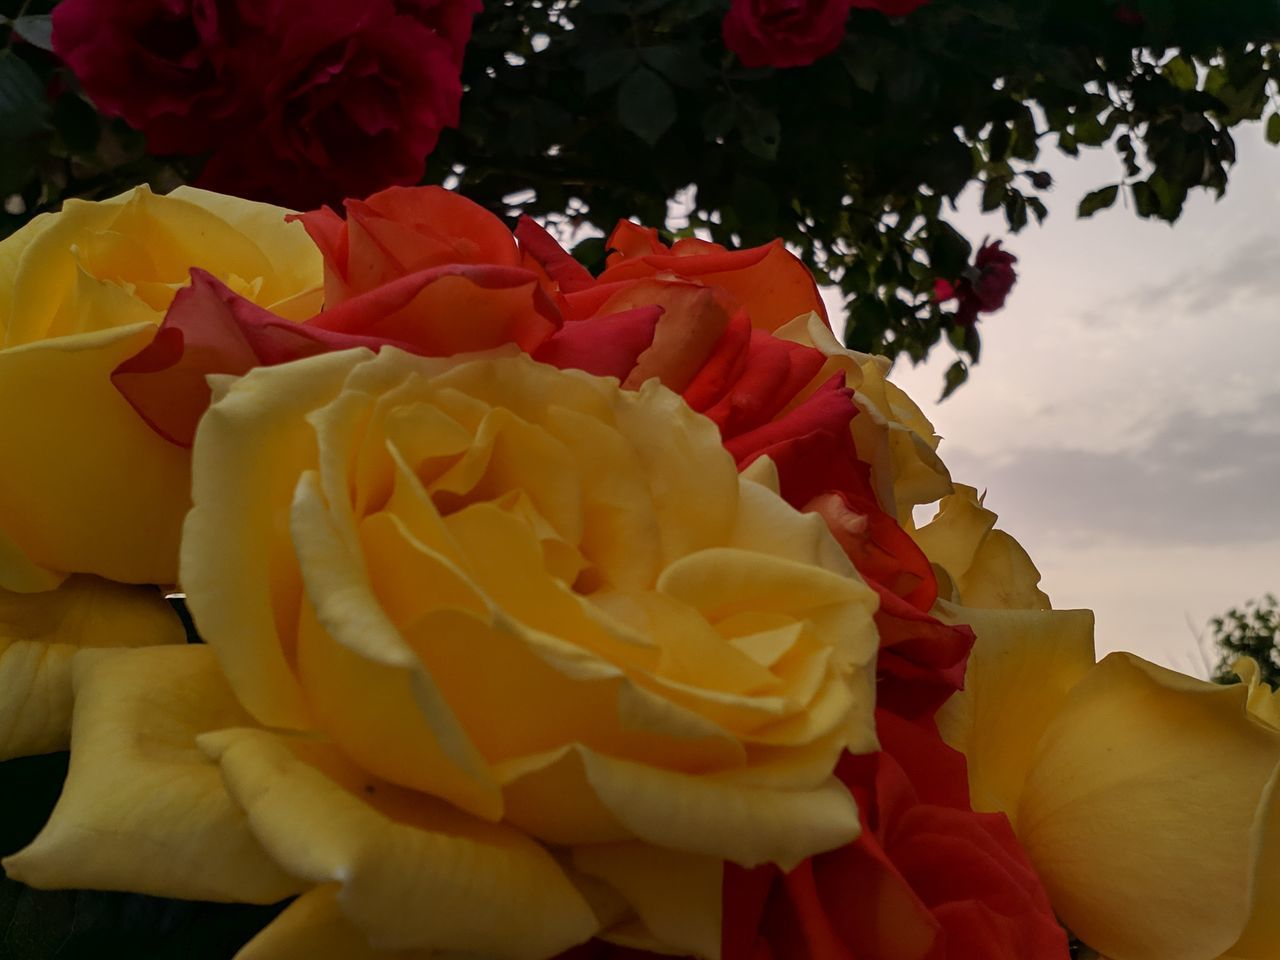 CLOSE-UP OF ROSE BOUQUET AGAINST SKY